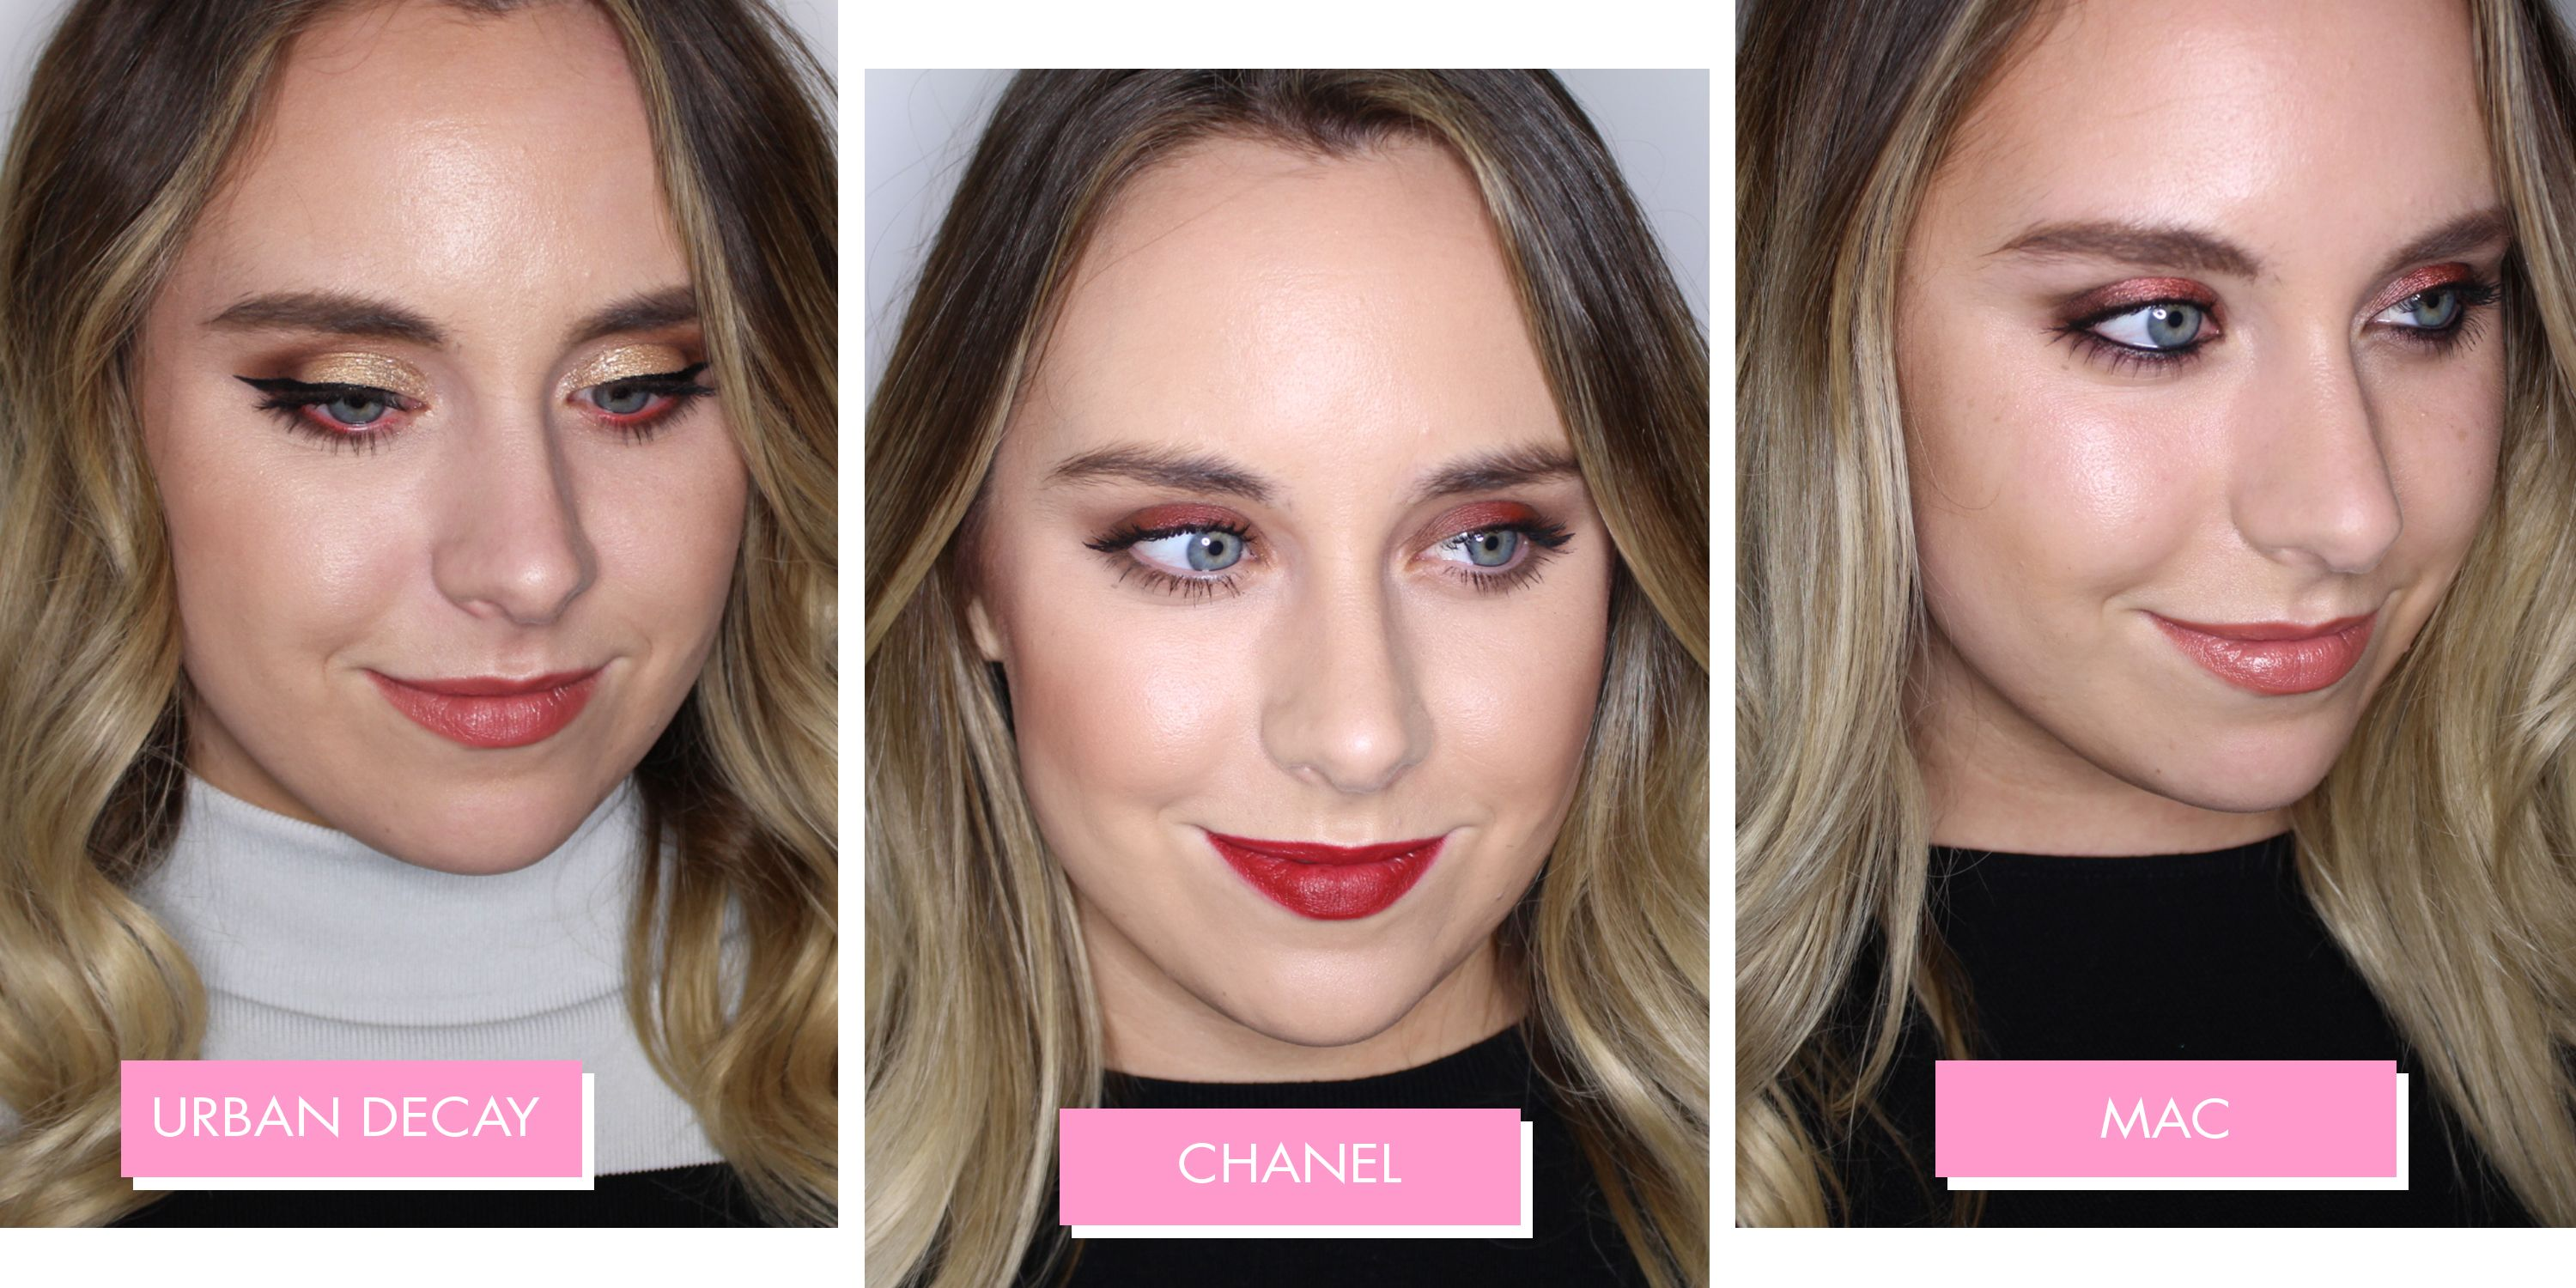 I had a makeover at 10 different beauty counters, and this is what they all looked like...